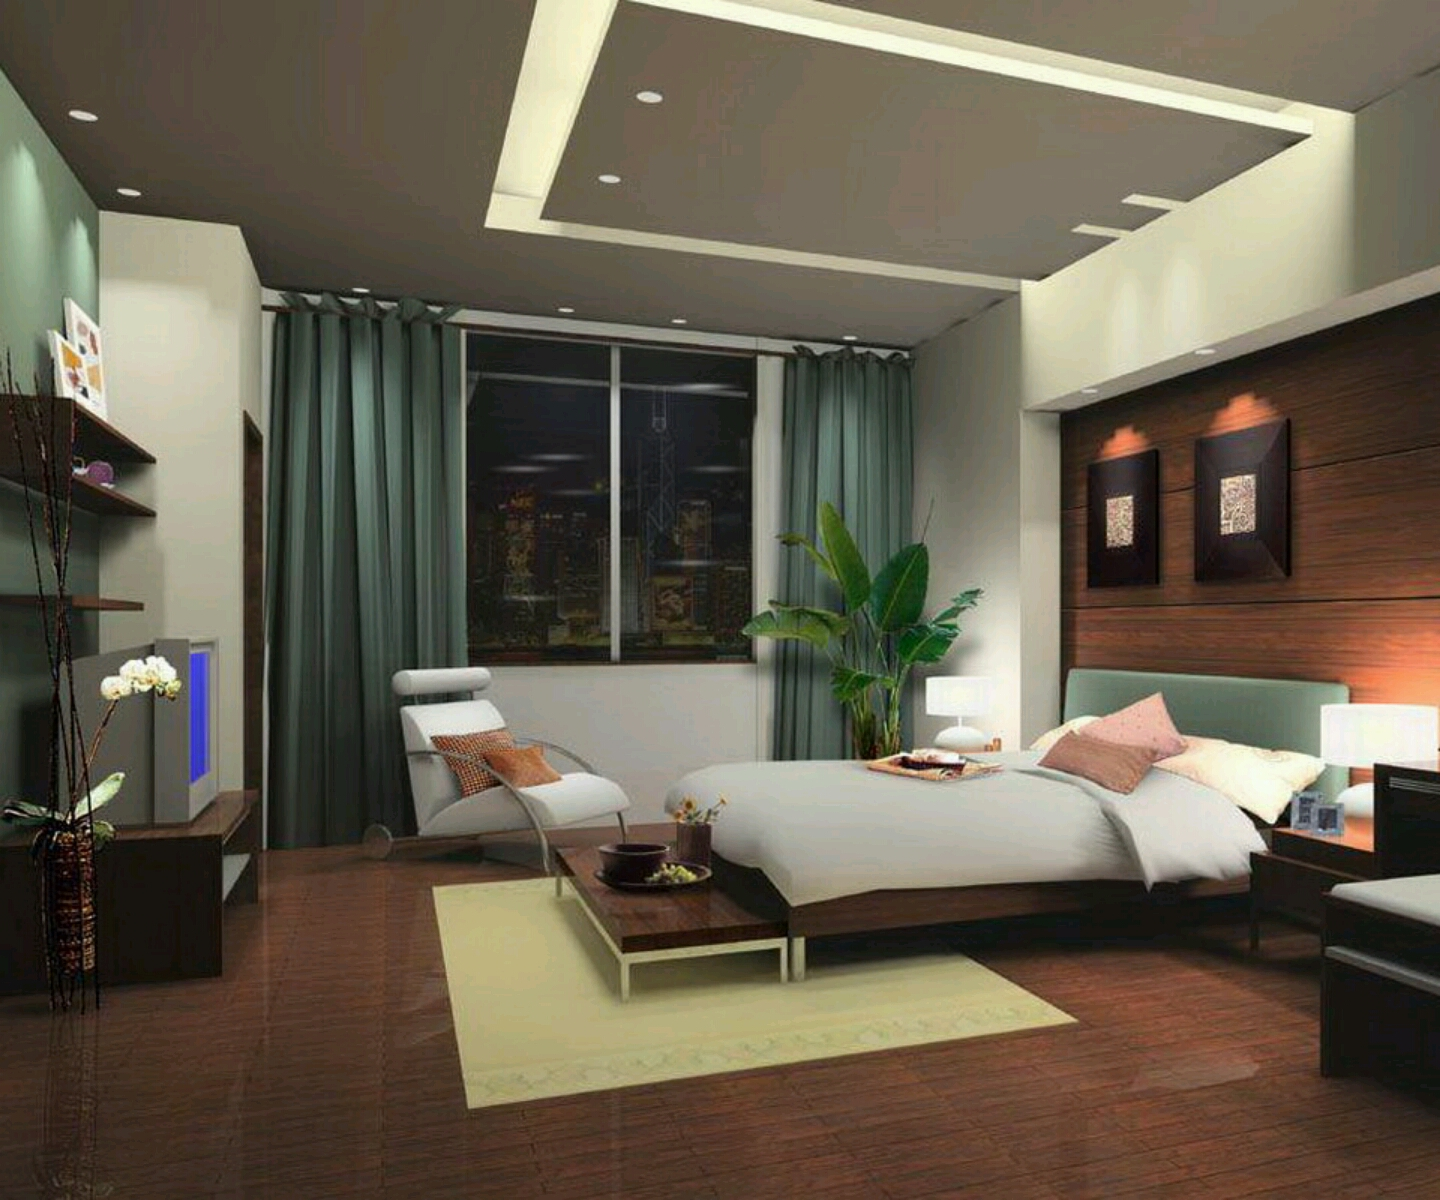 New home designs latest modern bedrooms designs best ideas for Contemporary room design